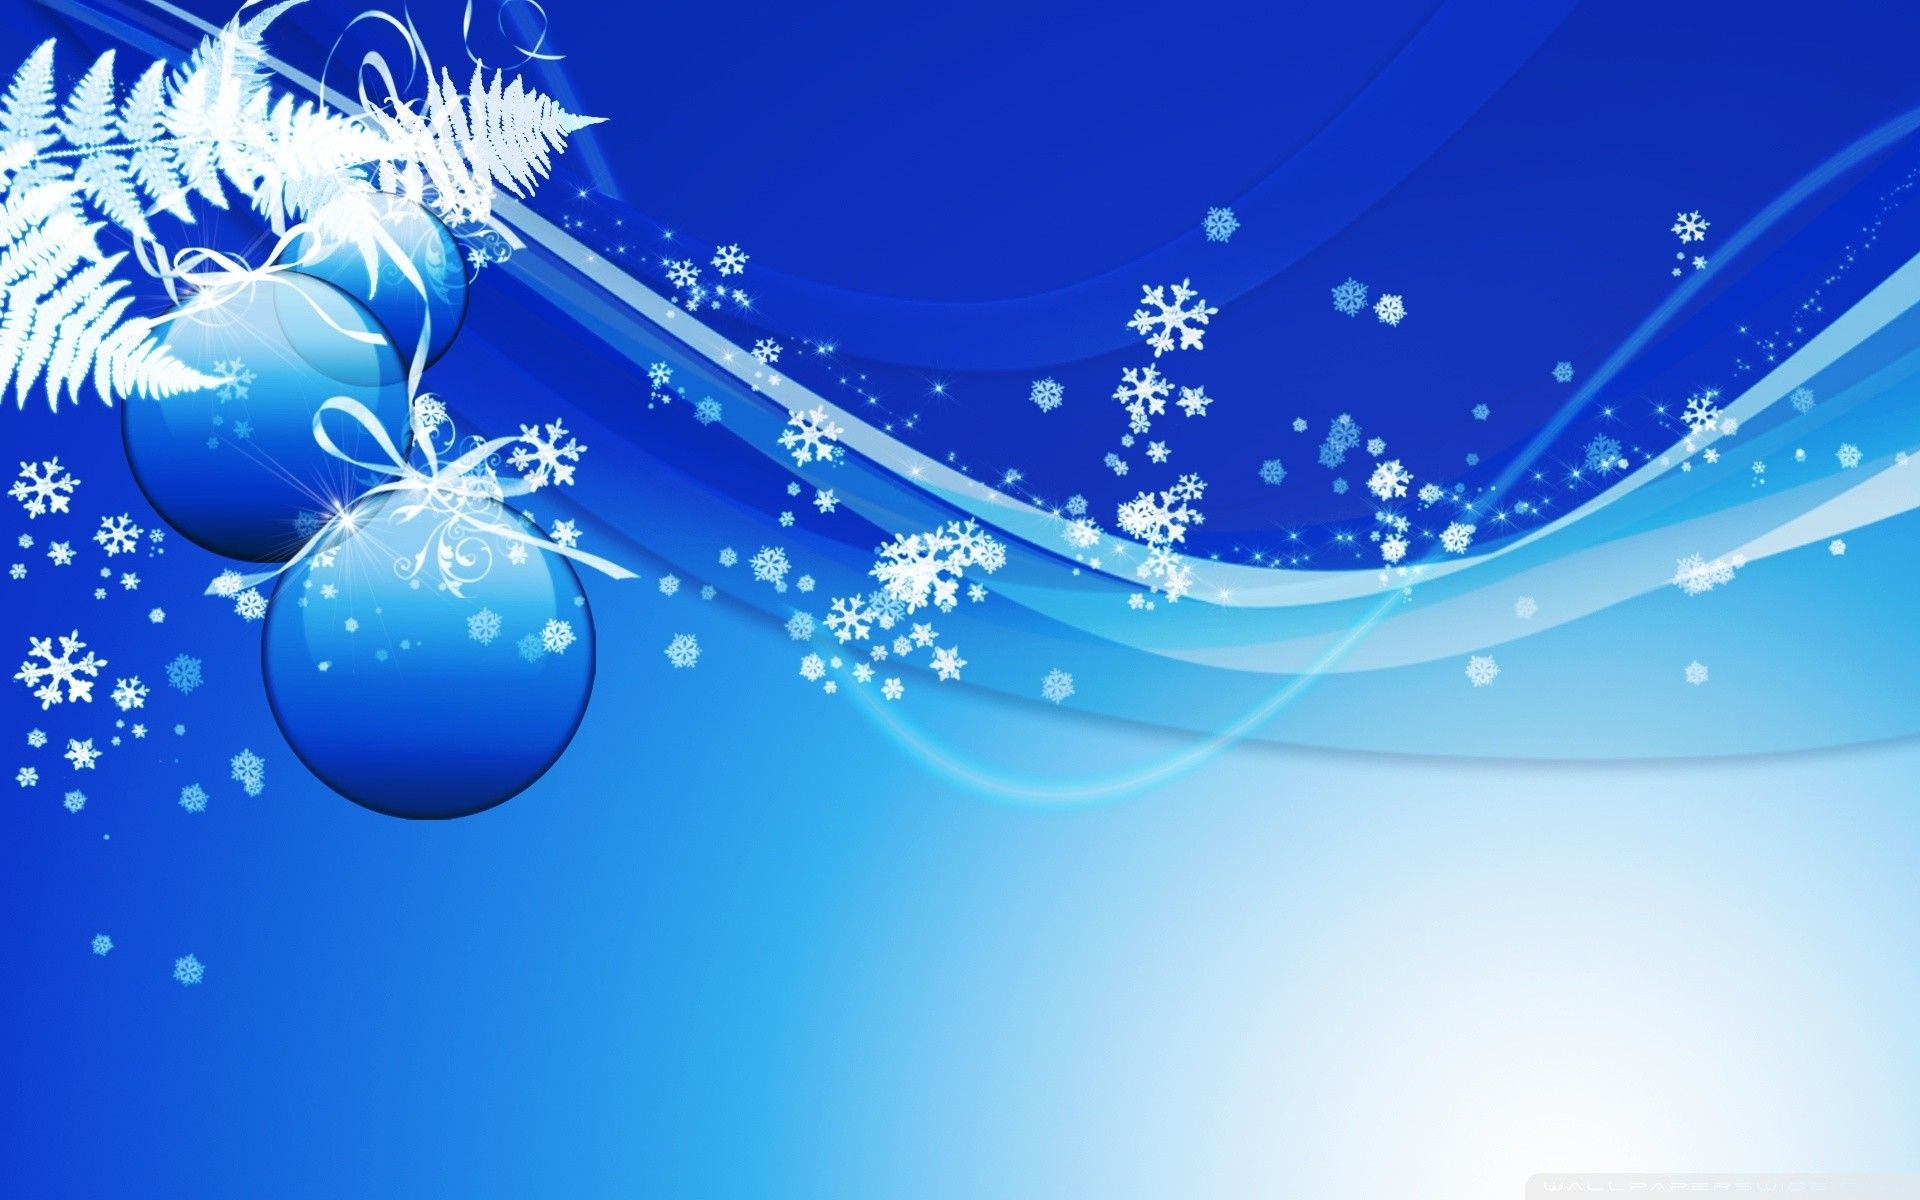 Blue Christmas Wallpapers Top Free Blue Christmas Backgrounds Wallpaperaccess